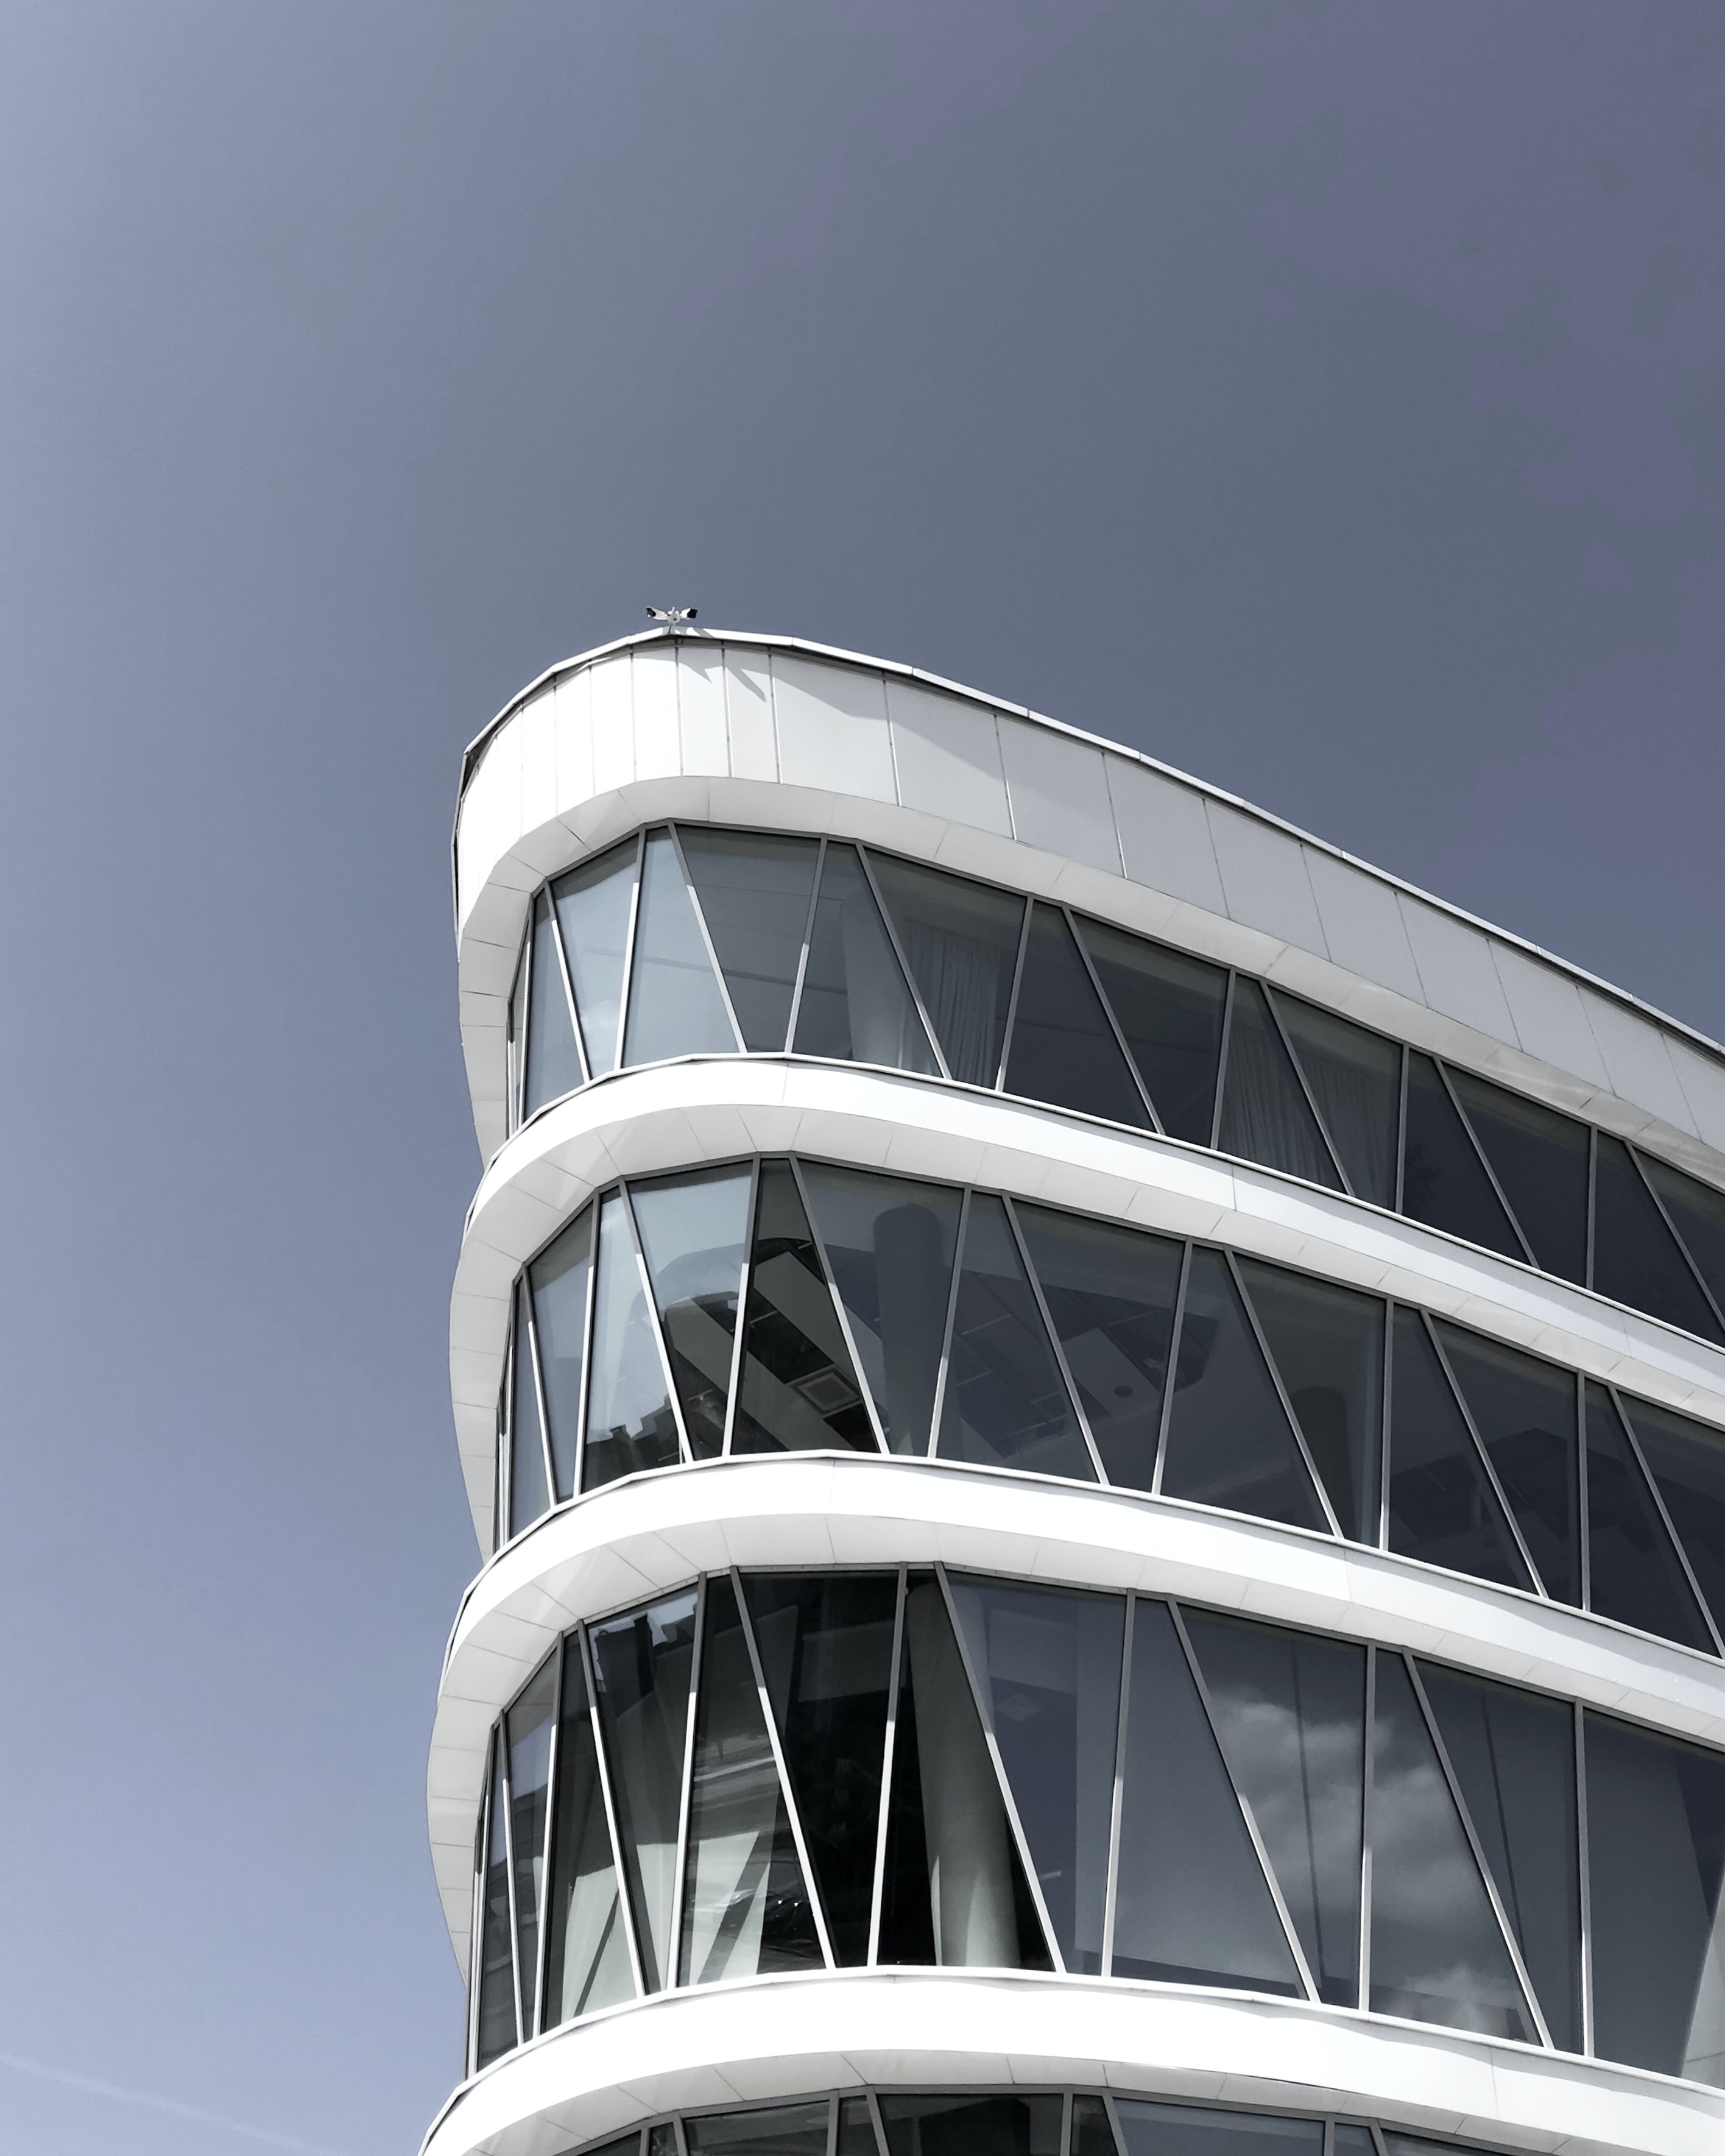 architectural photography of a white triangular building